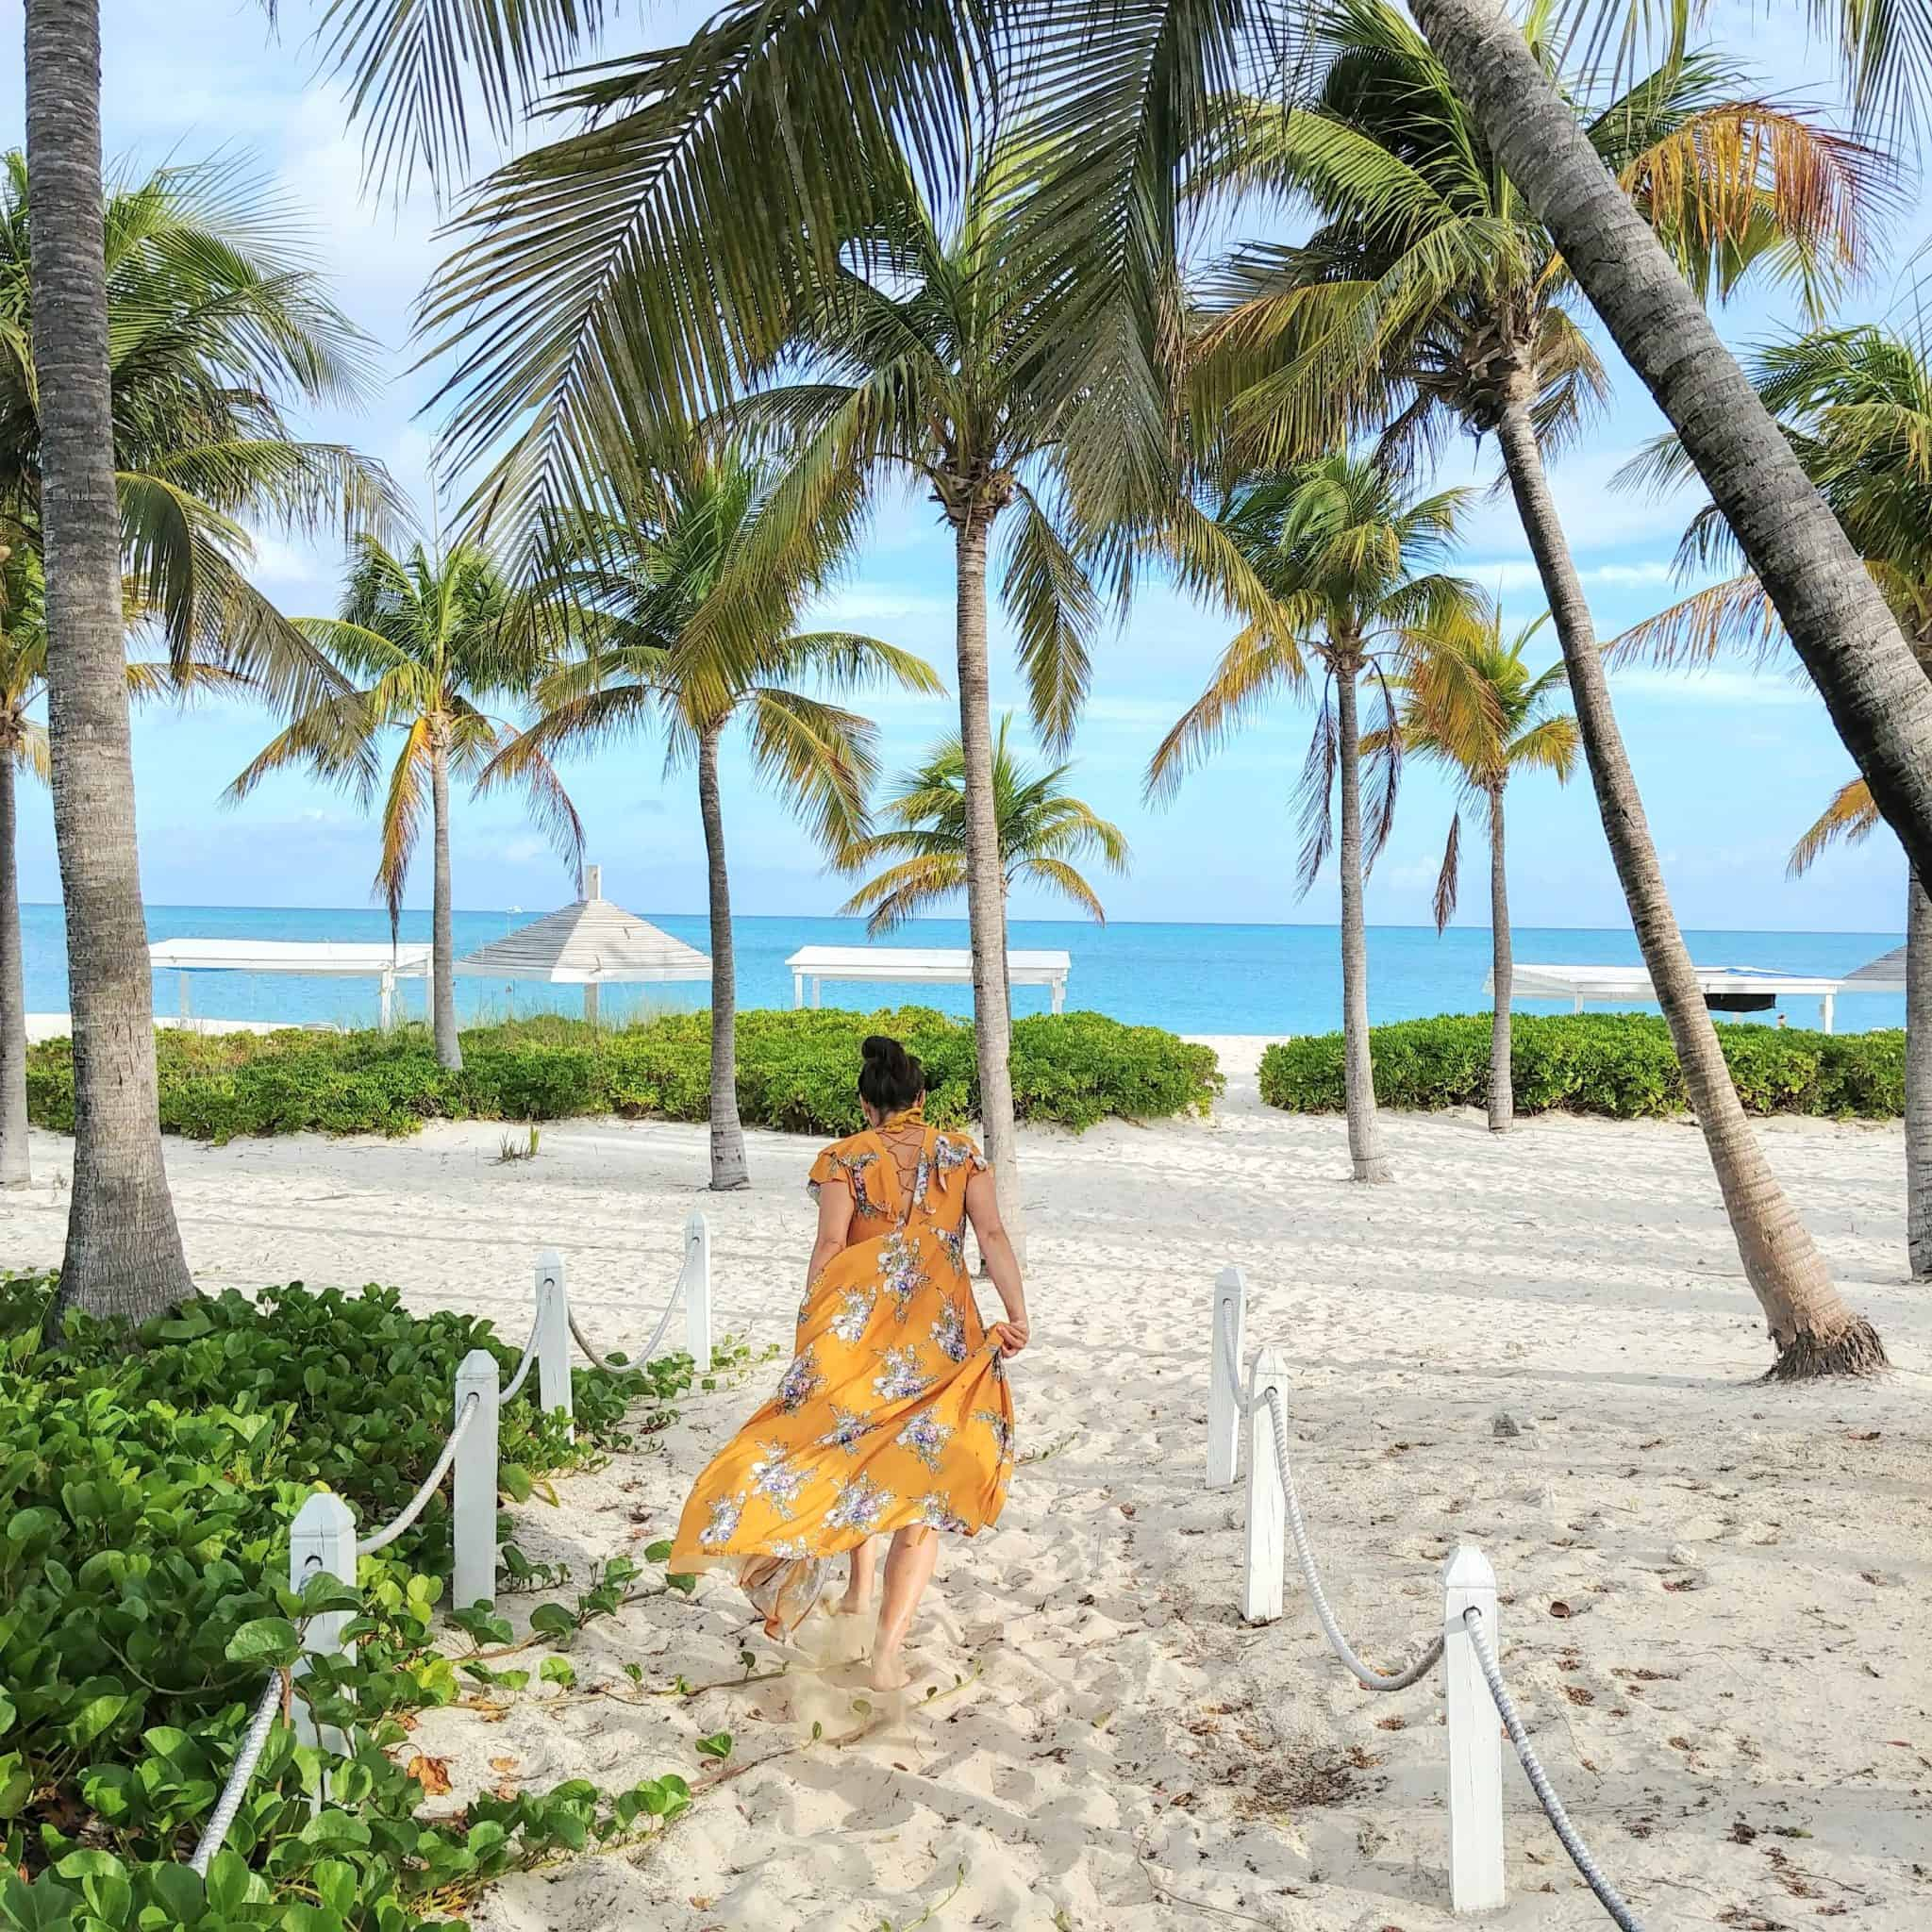 Club Med All Inclusive Turks and Caicos Resort running to beach with palm trees in yellow floral dress